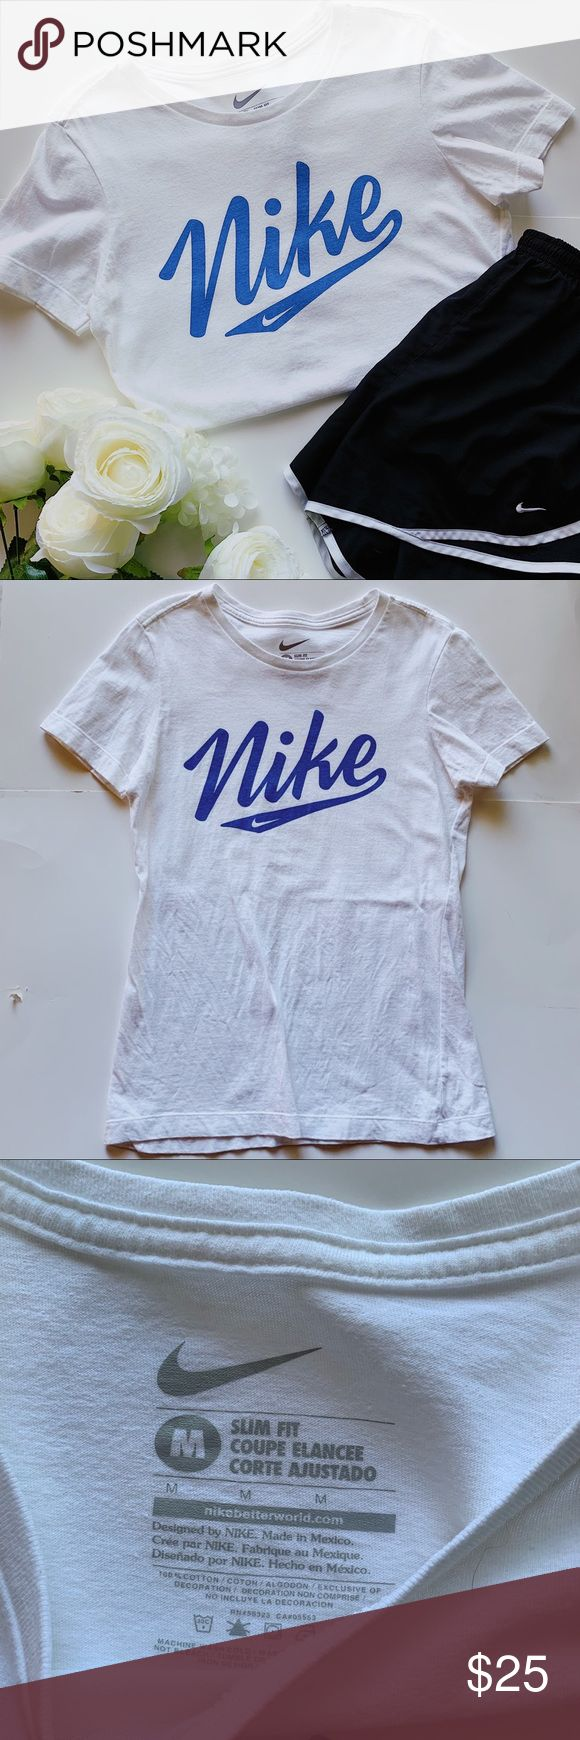 NIKE slim fit Tshirt NIKE slim fit Tshirt. This is a